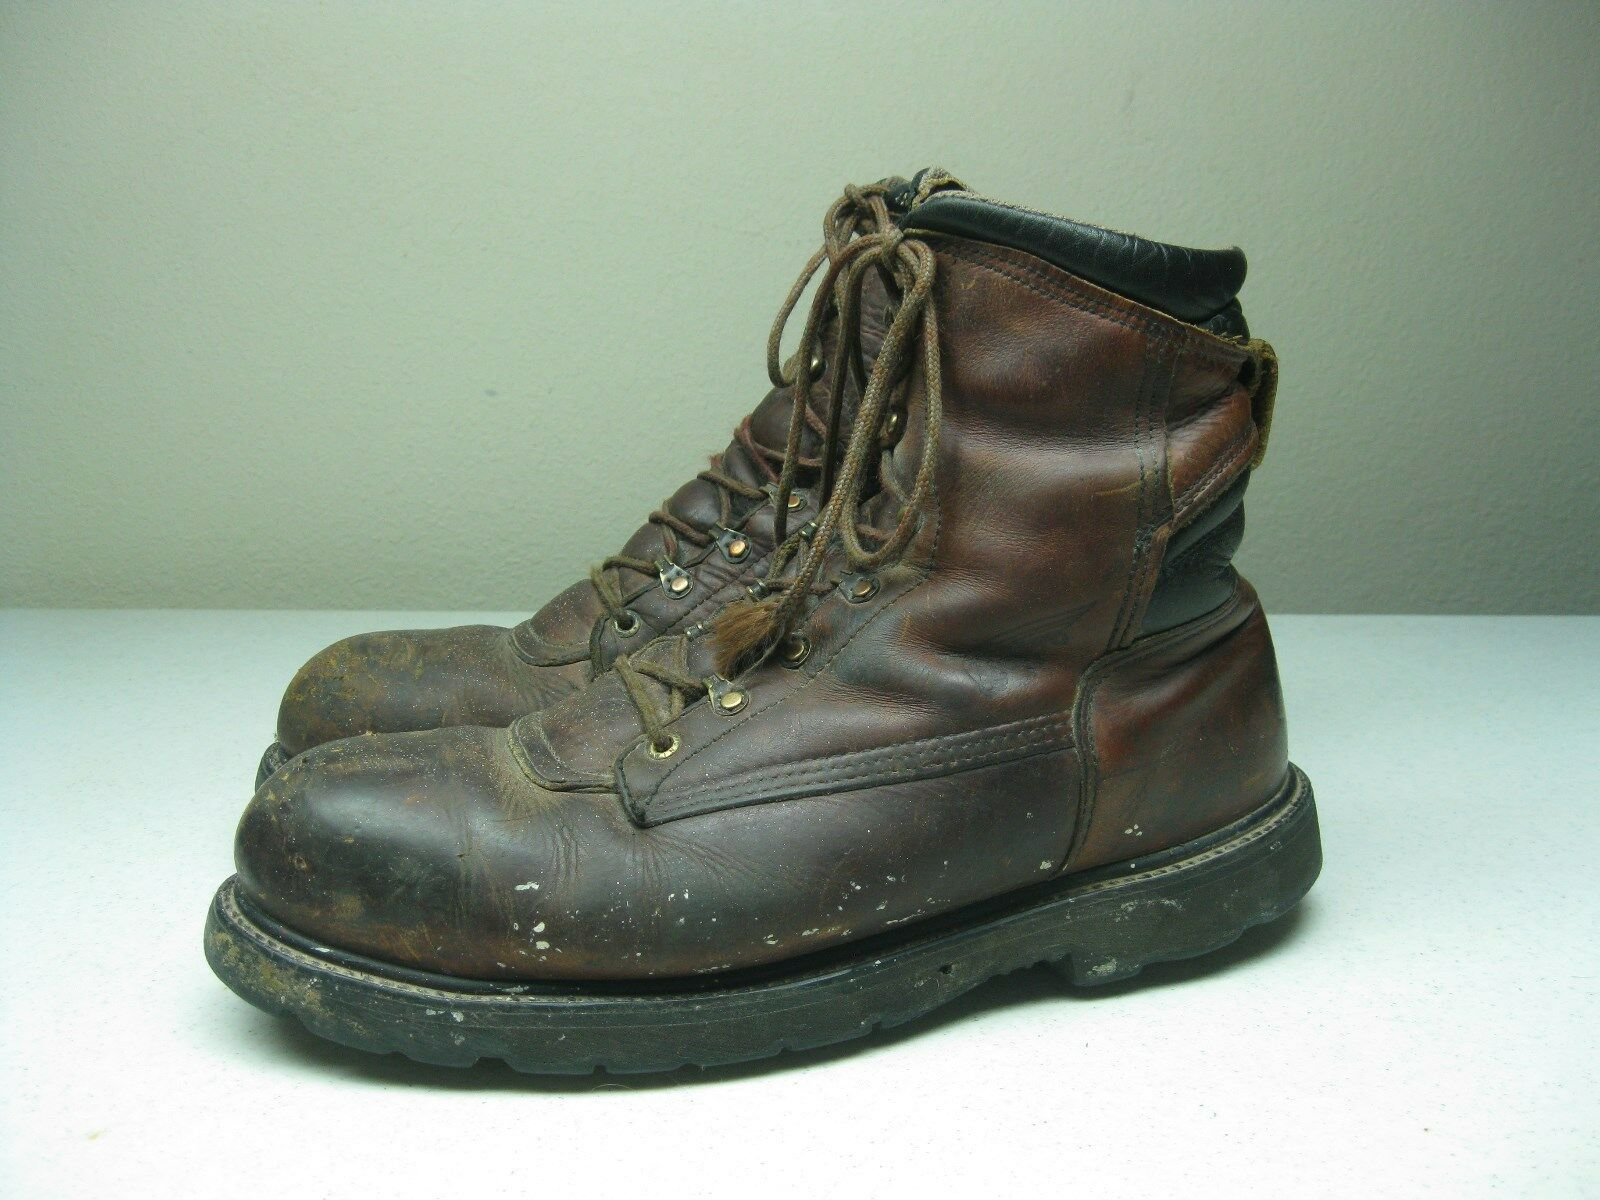 BROWN LEATHER MADE IN USA RED WING STEEL TOE MOTORCYCLE LACE UP WORK BOOTS 12 E